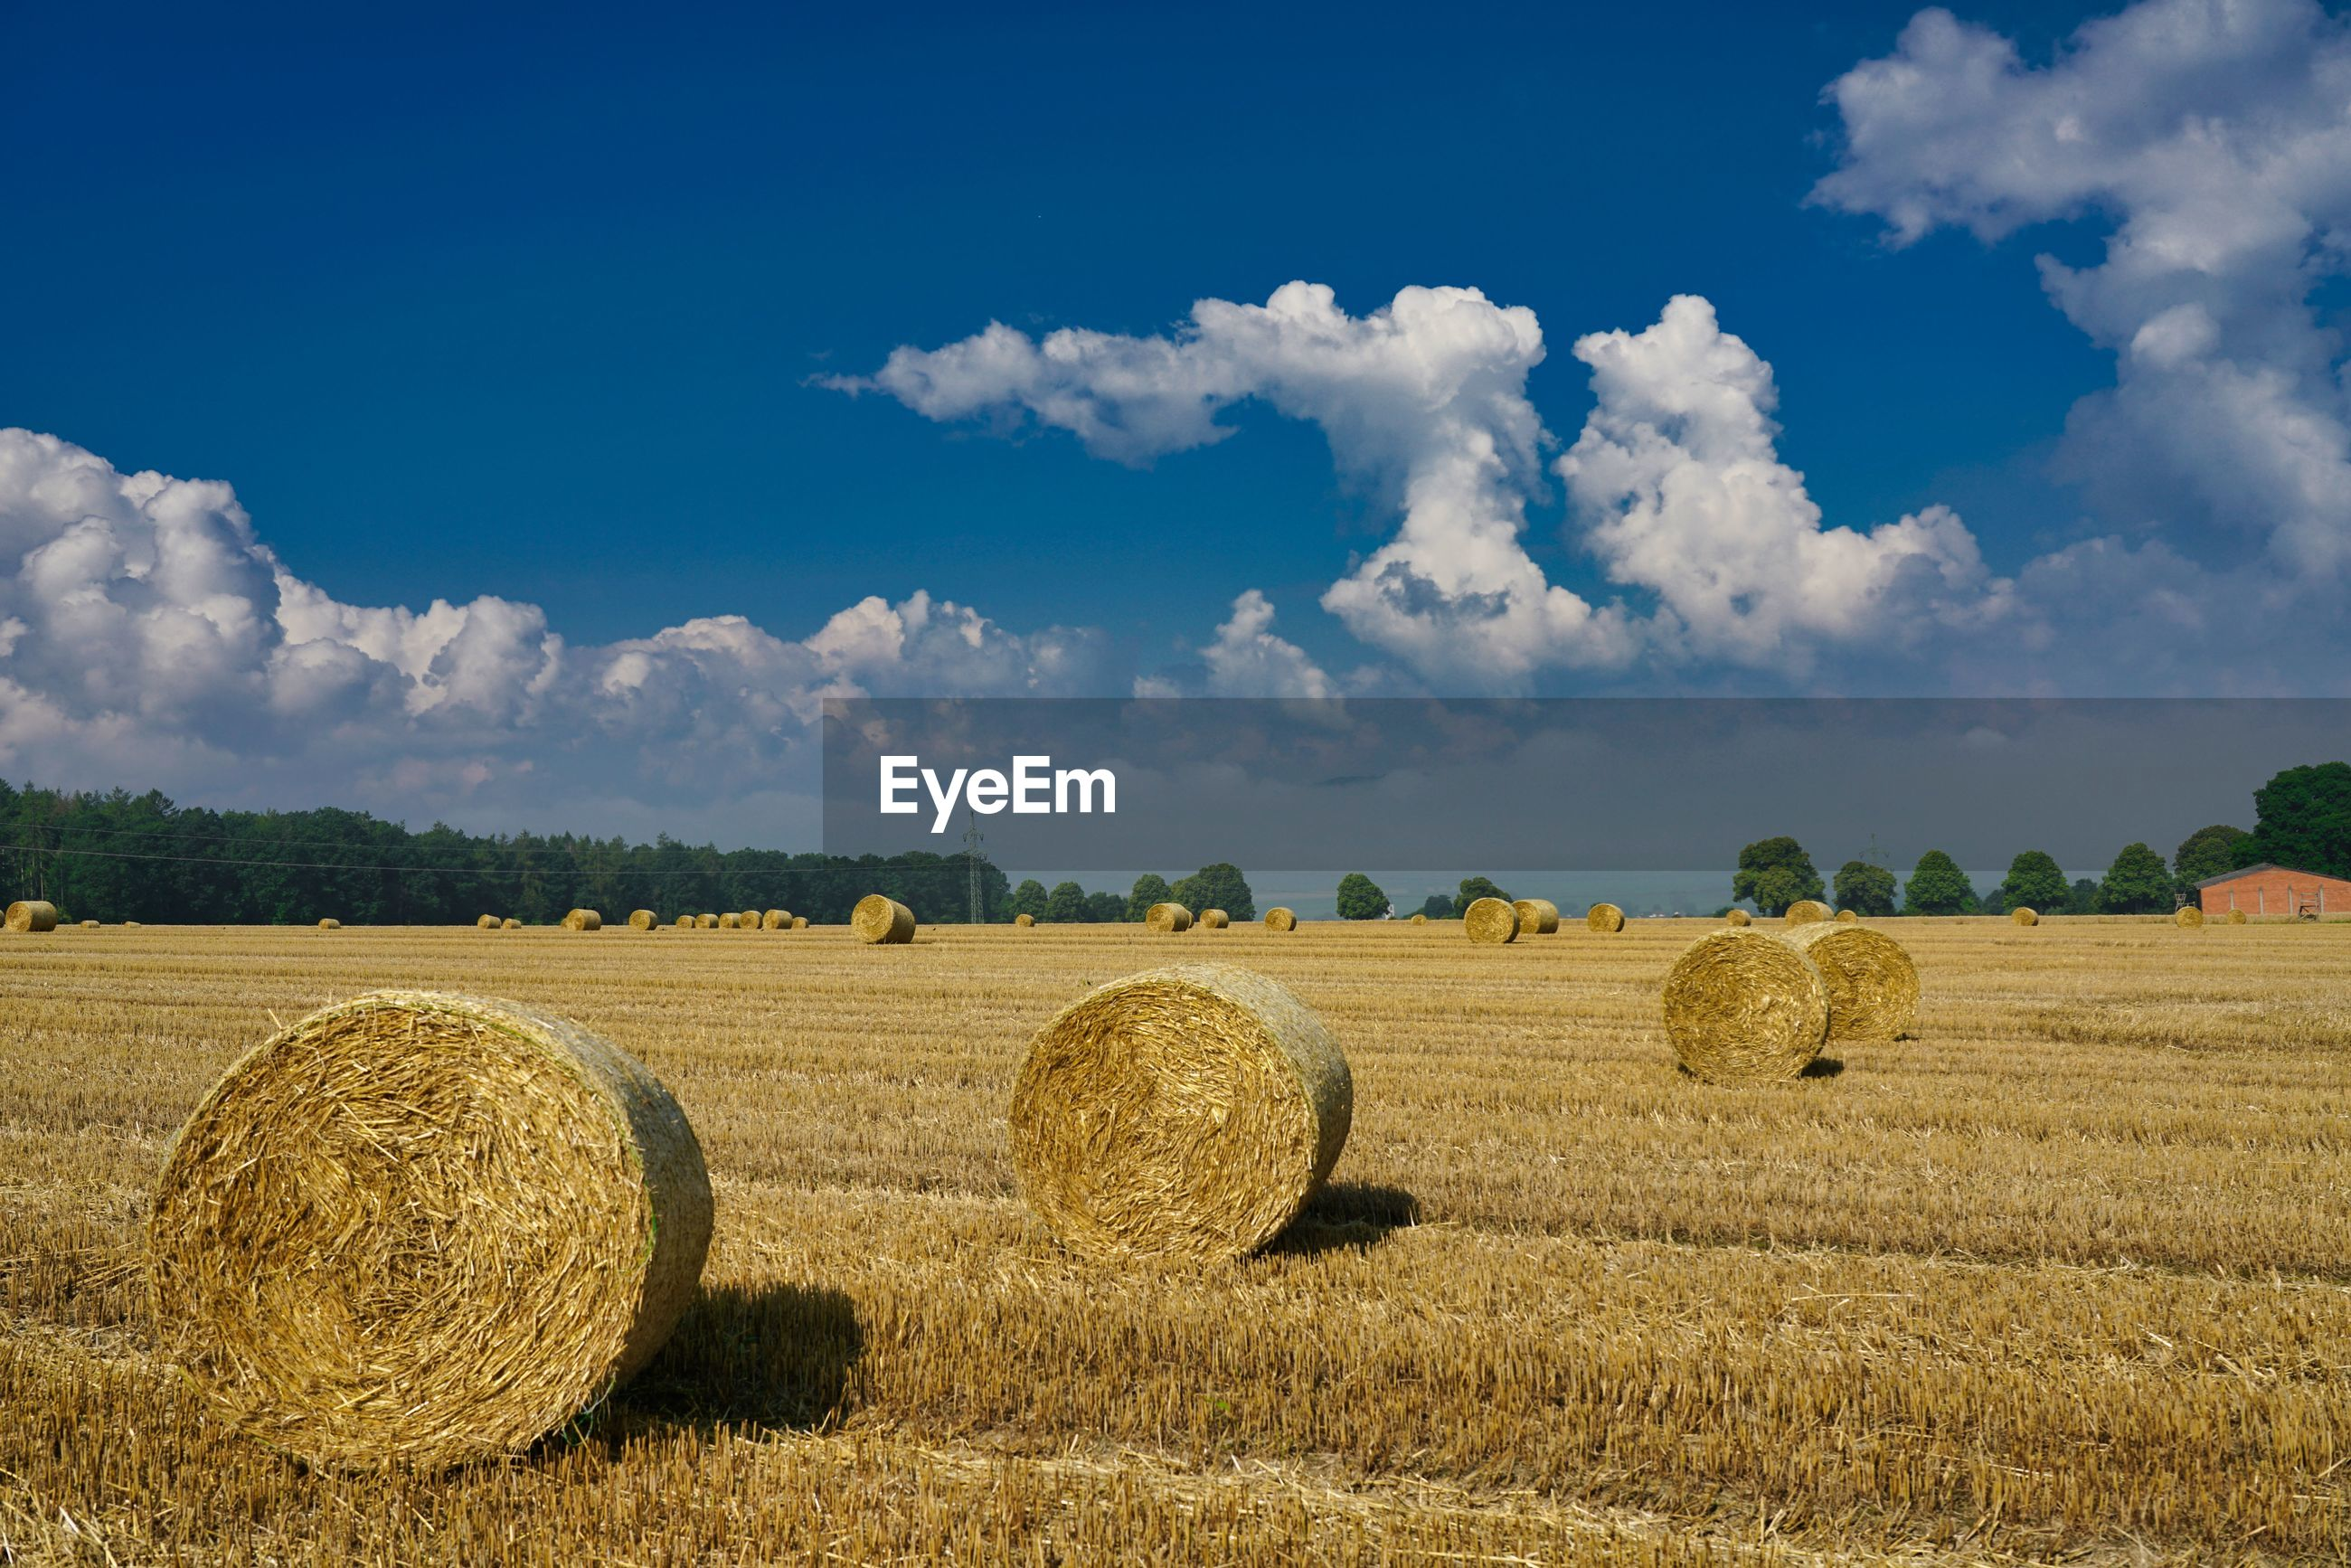 HAY BALES IN FIELD AGAINST SKY